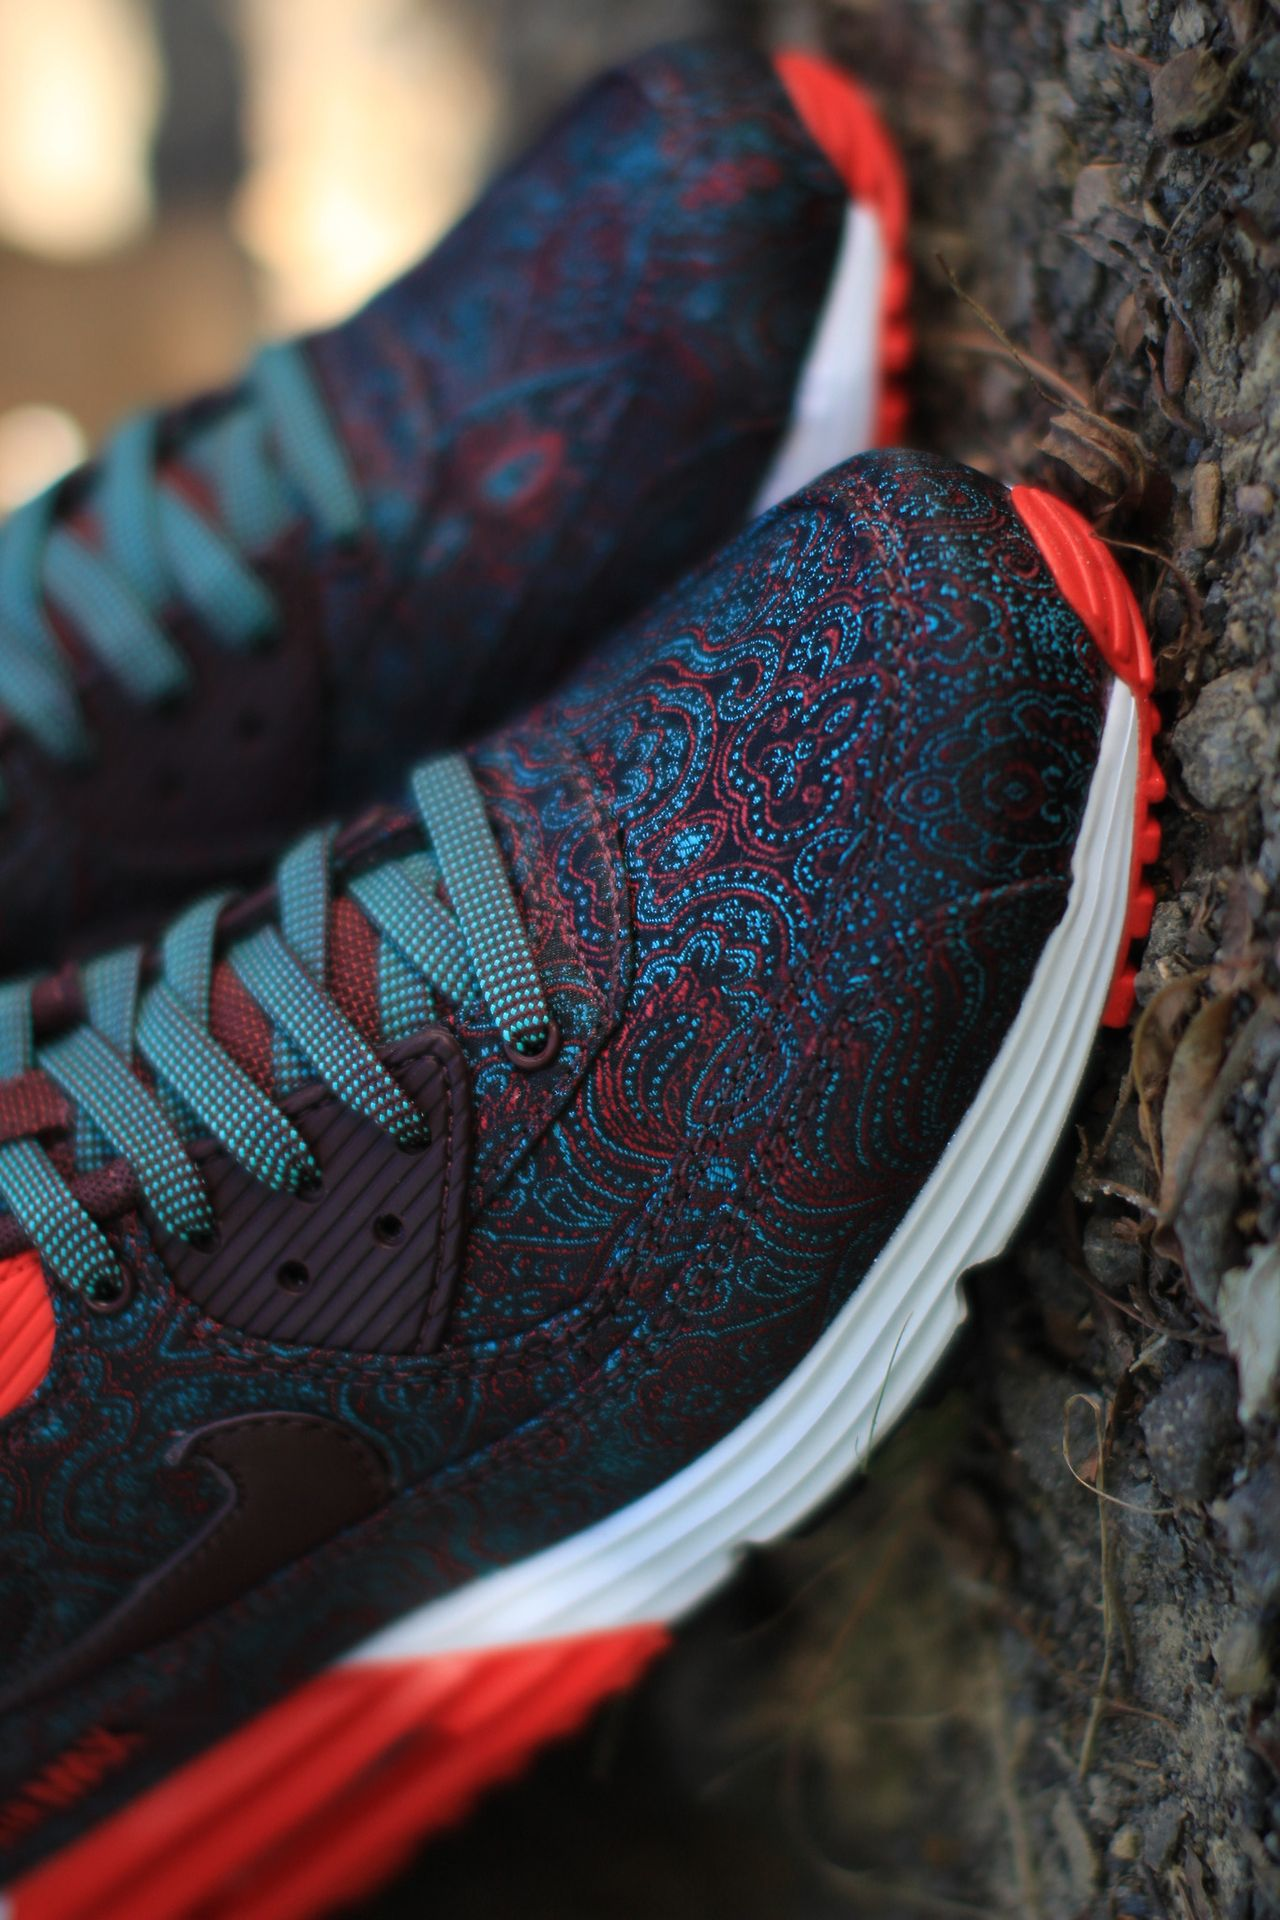 unstablefragments: Nike Air Max Lunar 90 'Suit and Tie' by